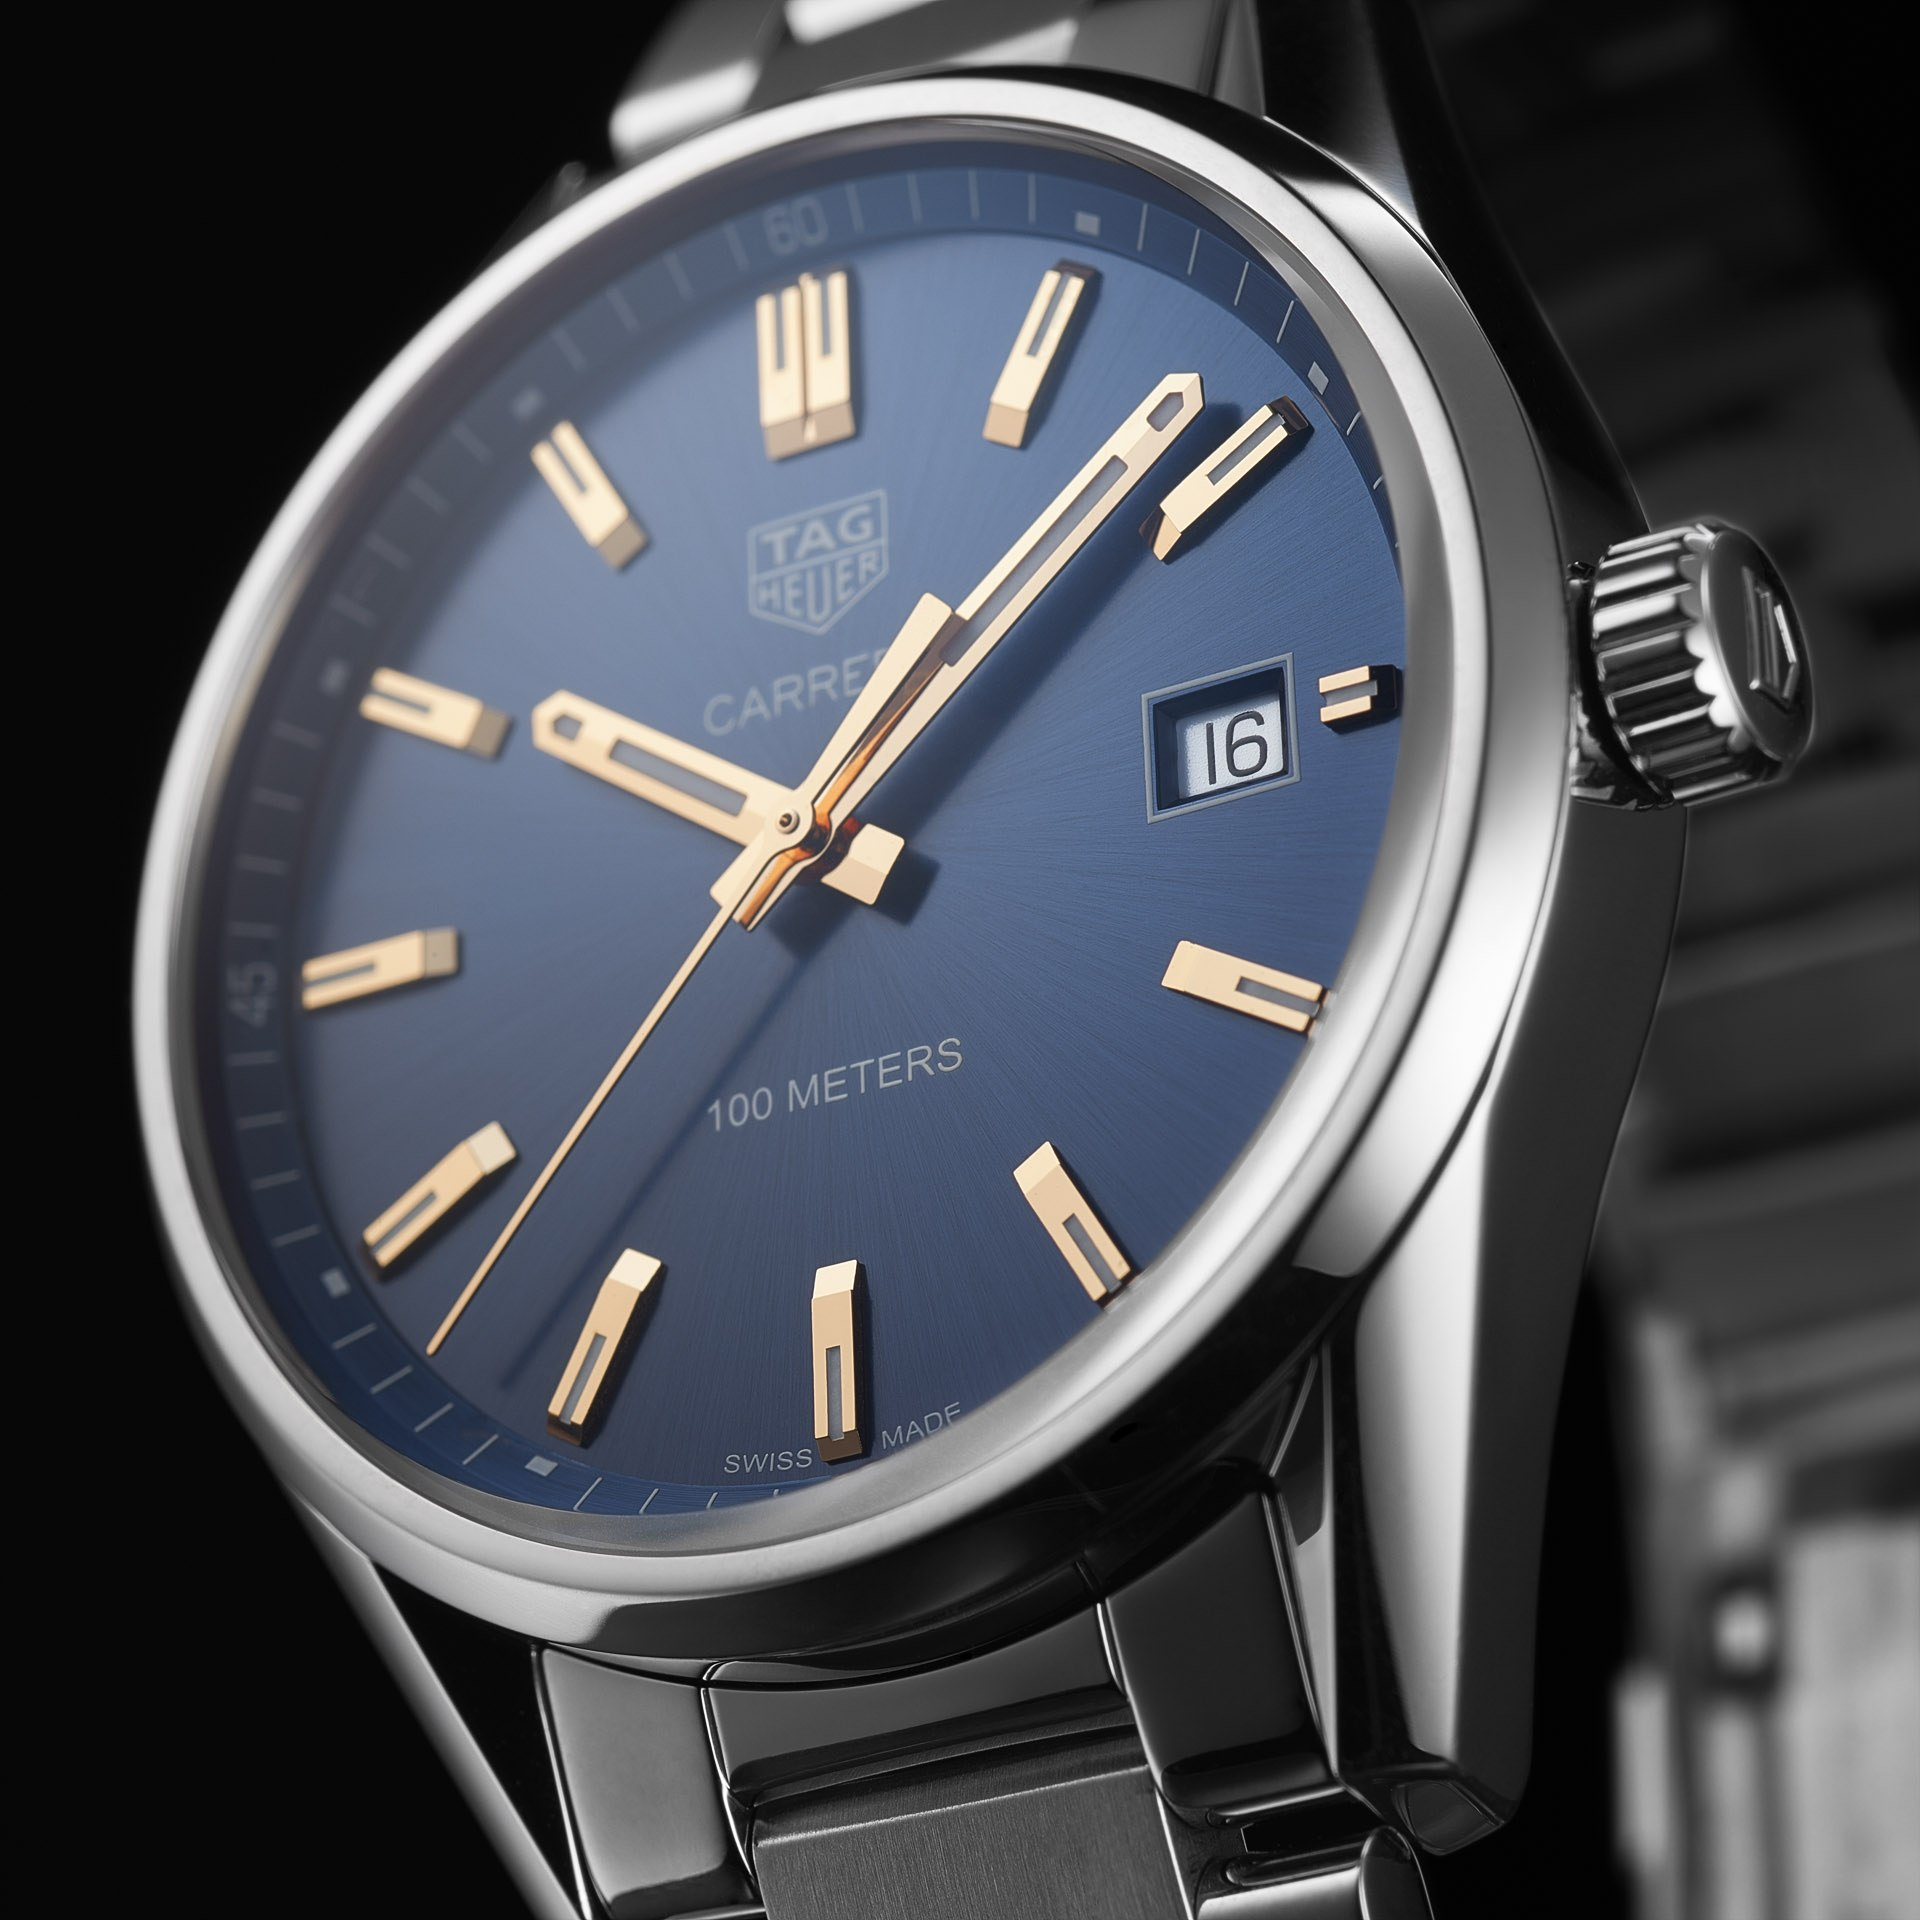 6ecfe038551 Tag Heuer Carrera 39mm Stainless Steel Watch - Whittles Jewellers ...